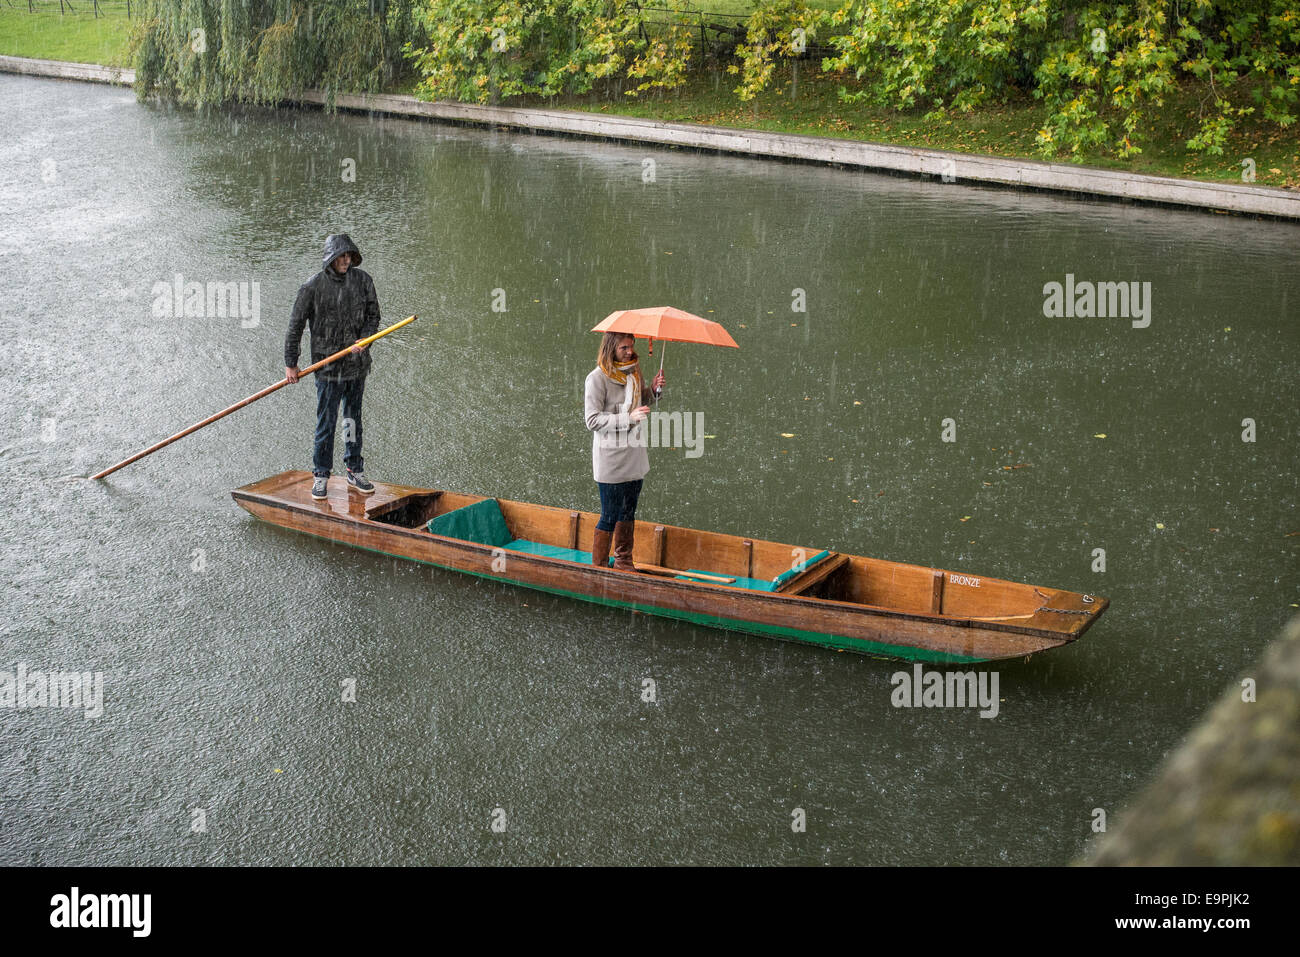 Rain shower whilst punting on the River Cam, Cambridge UK - Stock Image